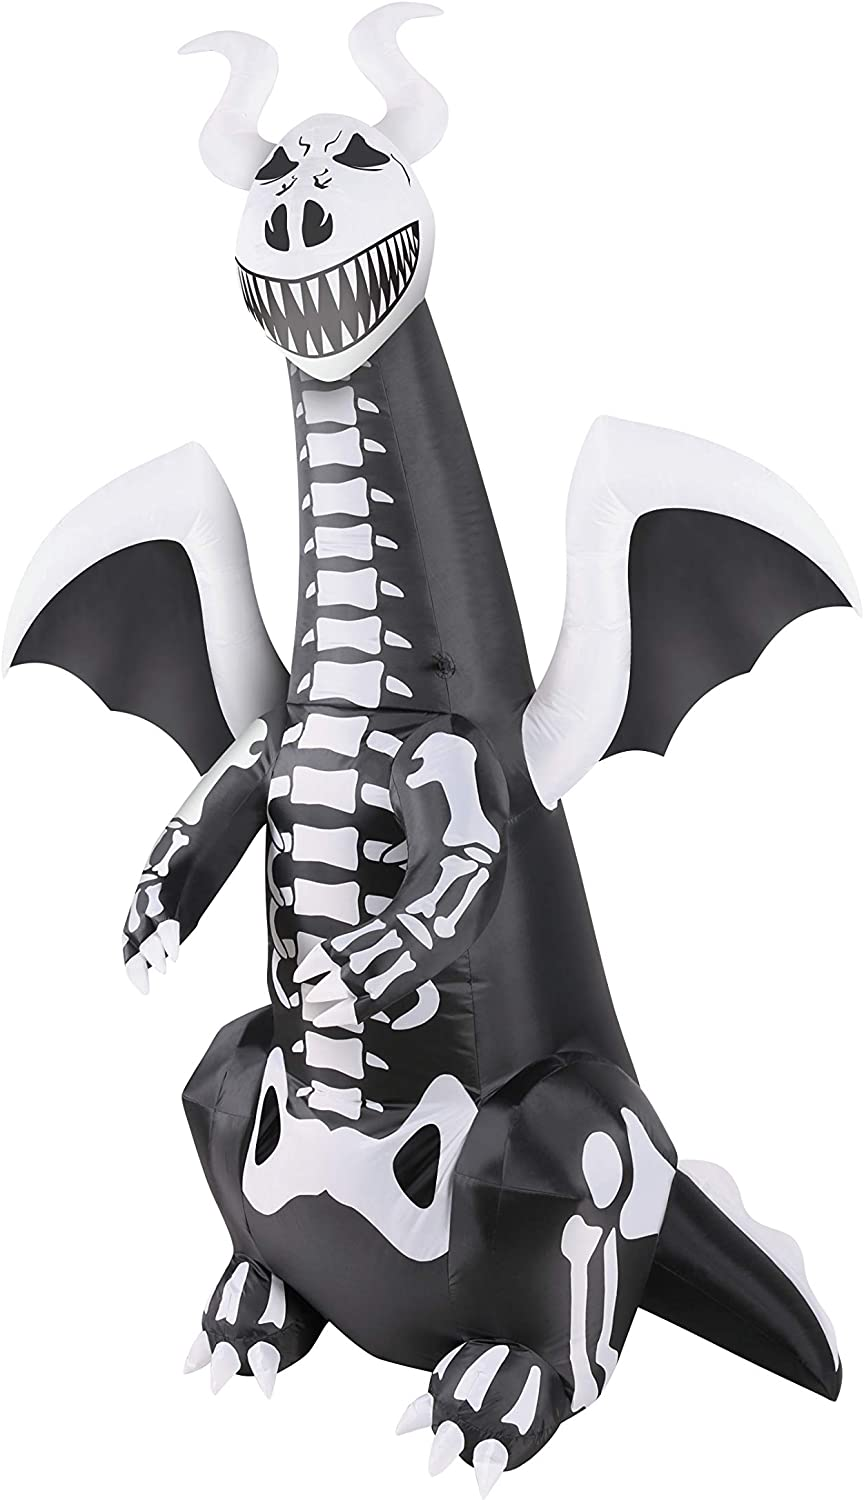 Occasions 7' Inflatable Skeleton Dragon